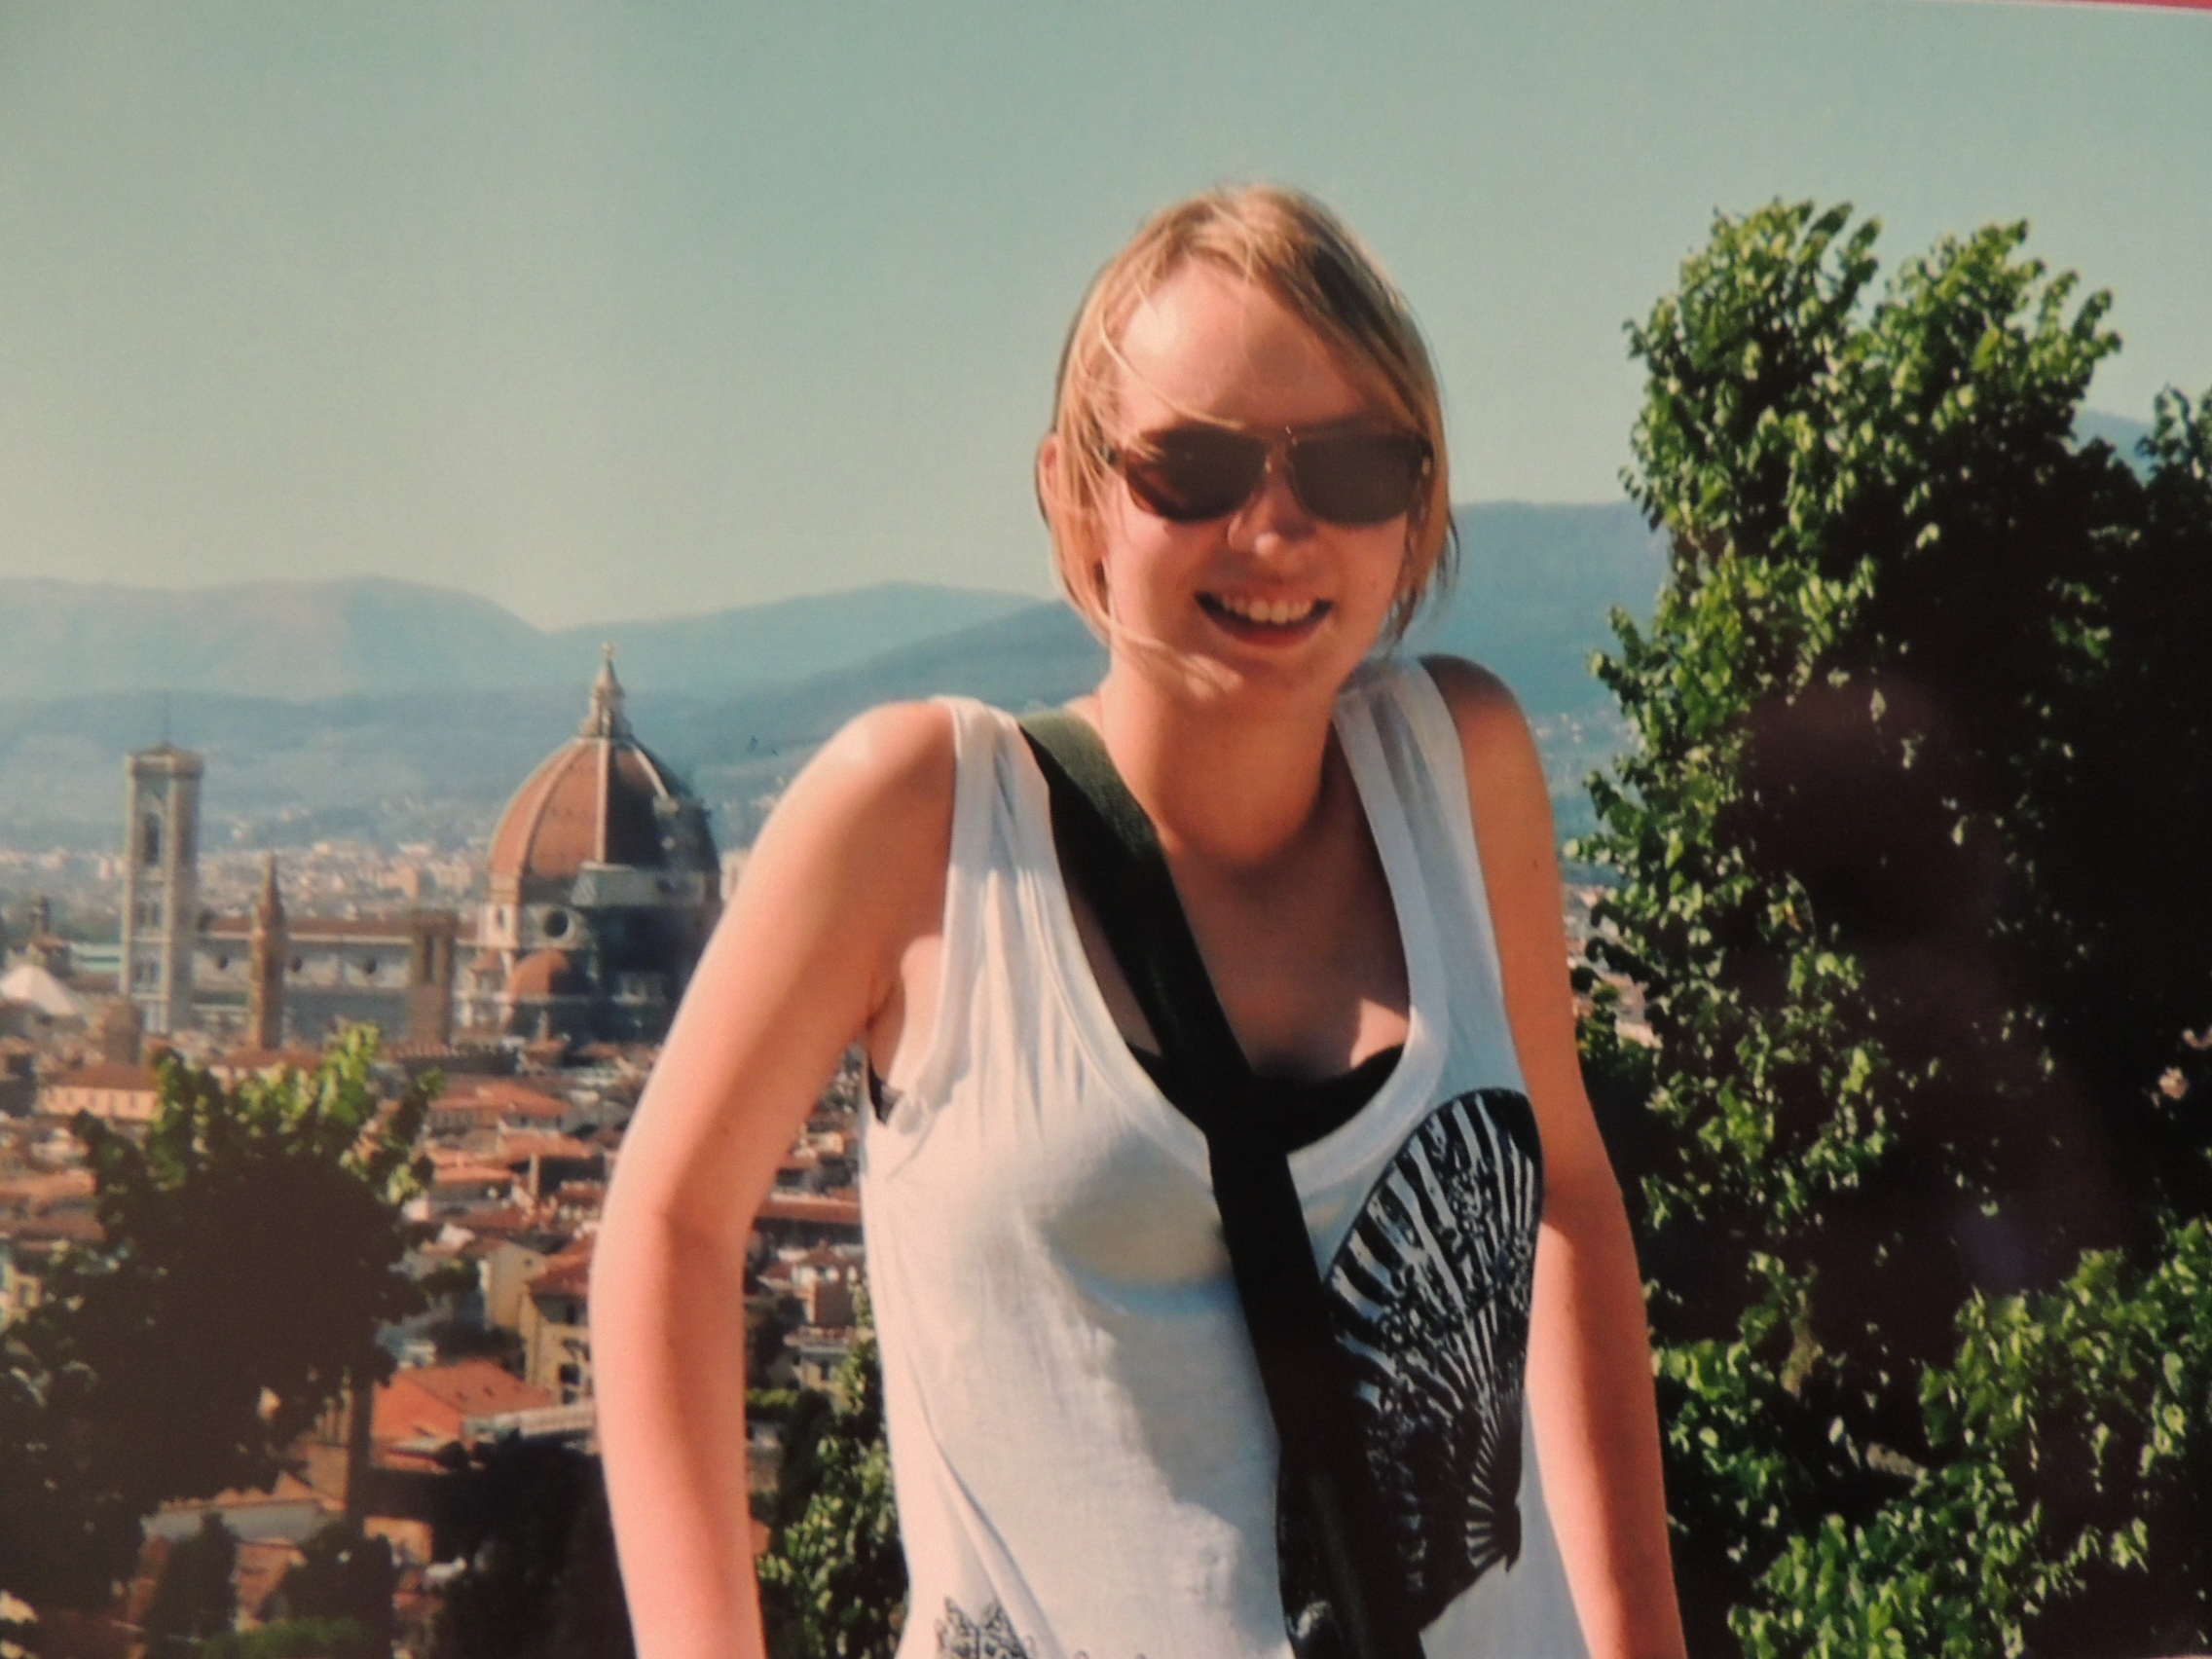 Can you tell me an essay about summer vacation in florence?